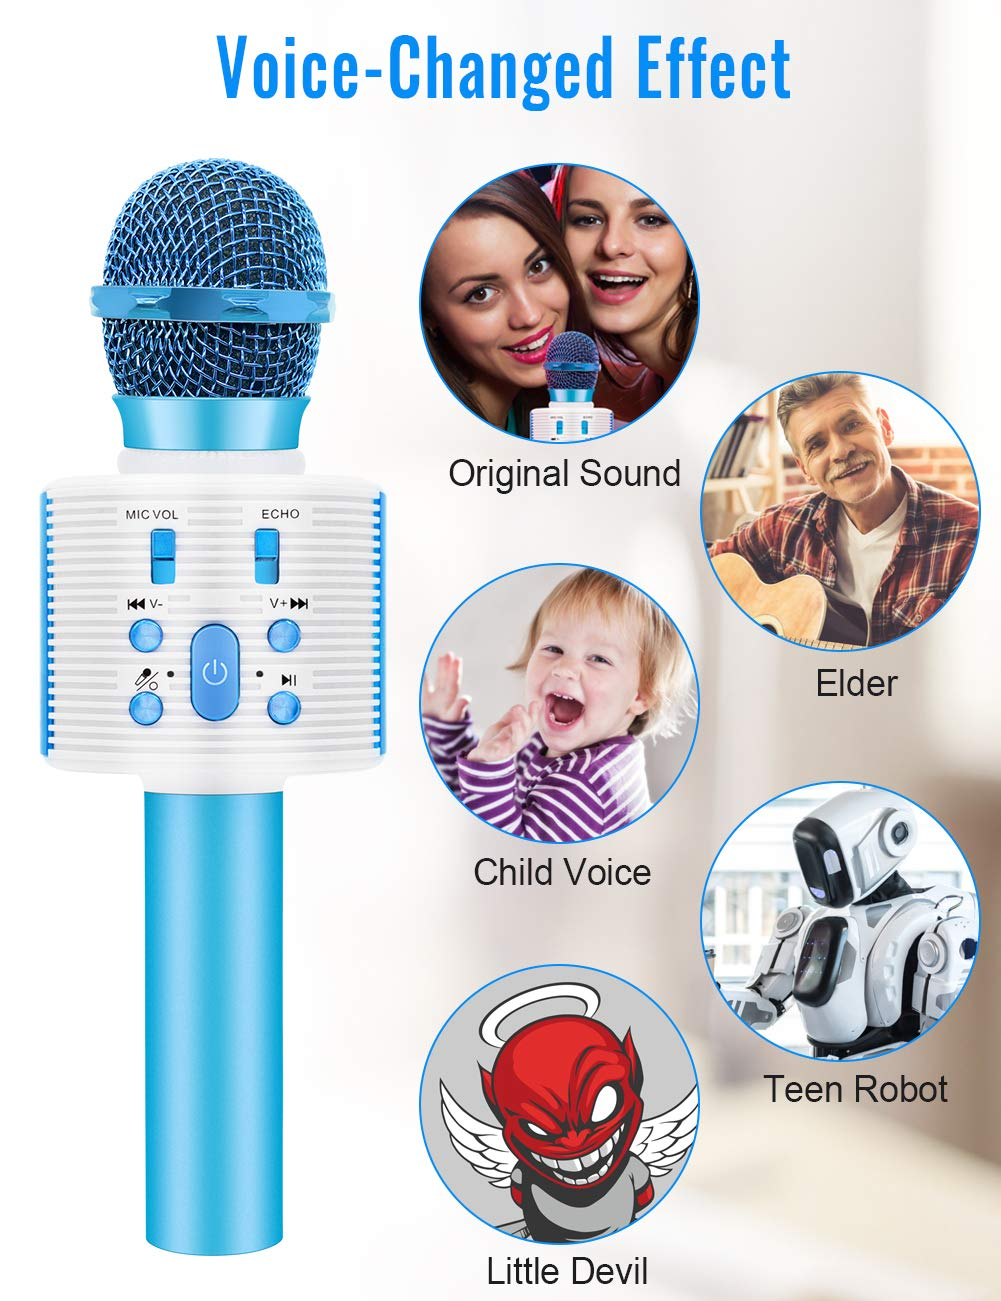 Wireless Karaoke Microphone with Speaker Pro, 3-in-1 Portable Handheld Karaoke Mic Home Party Birthday Gifts for Kids Speaker Machine for Android/ PC /phone(Blue) by weird tails (Image #3)